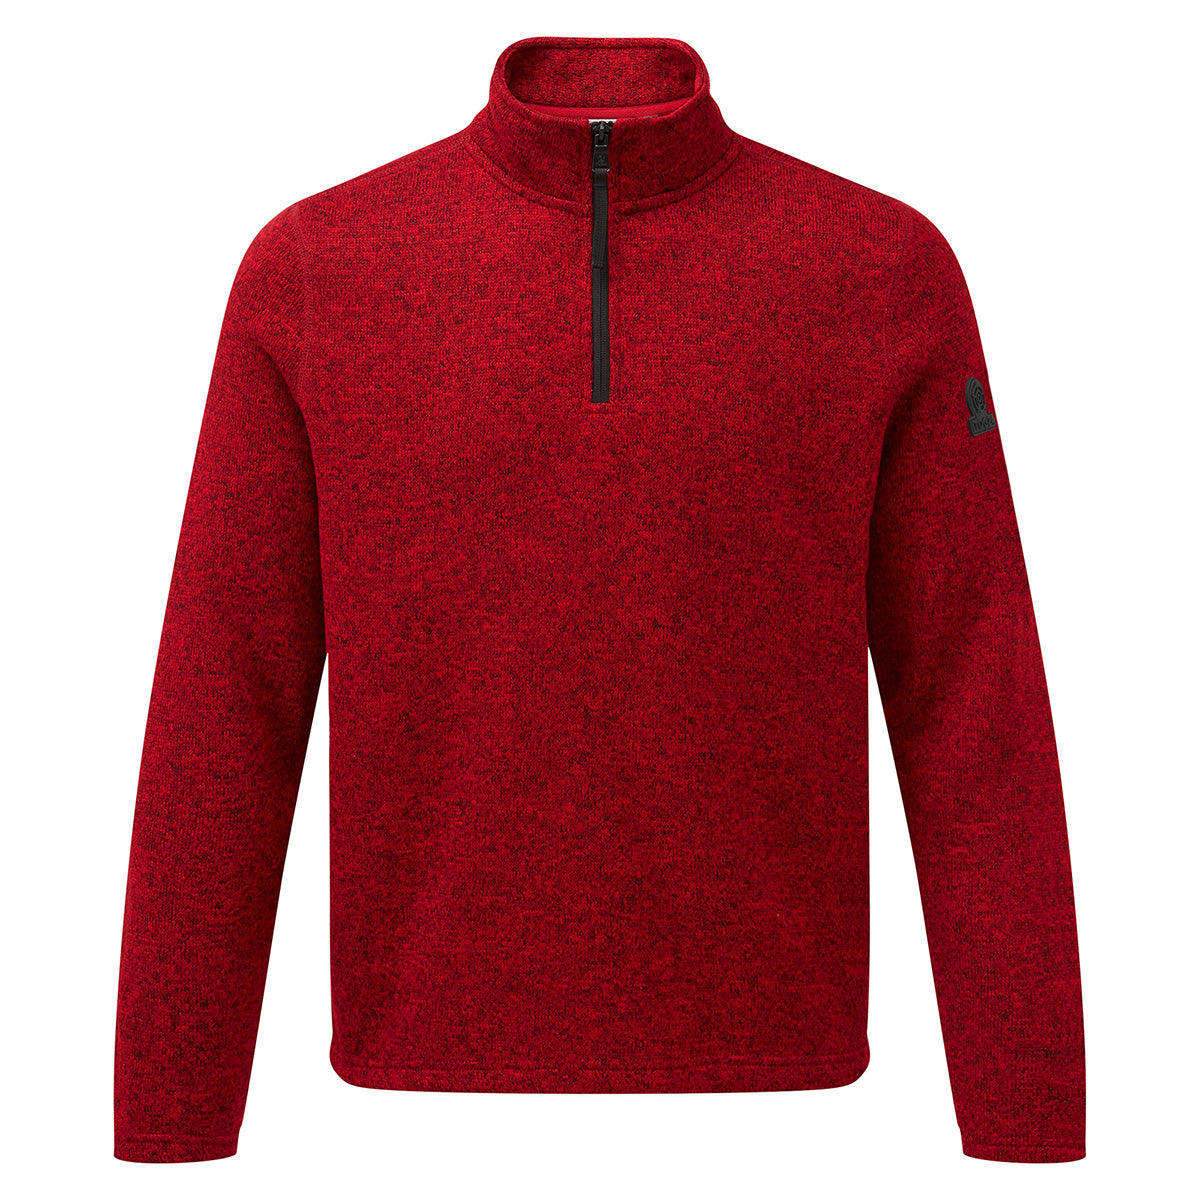 Monza Mens Knitlook Fleece Zipneck - Chilli Marl image 4